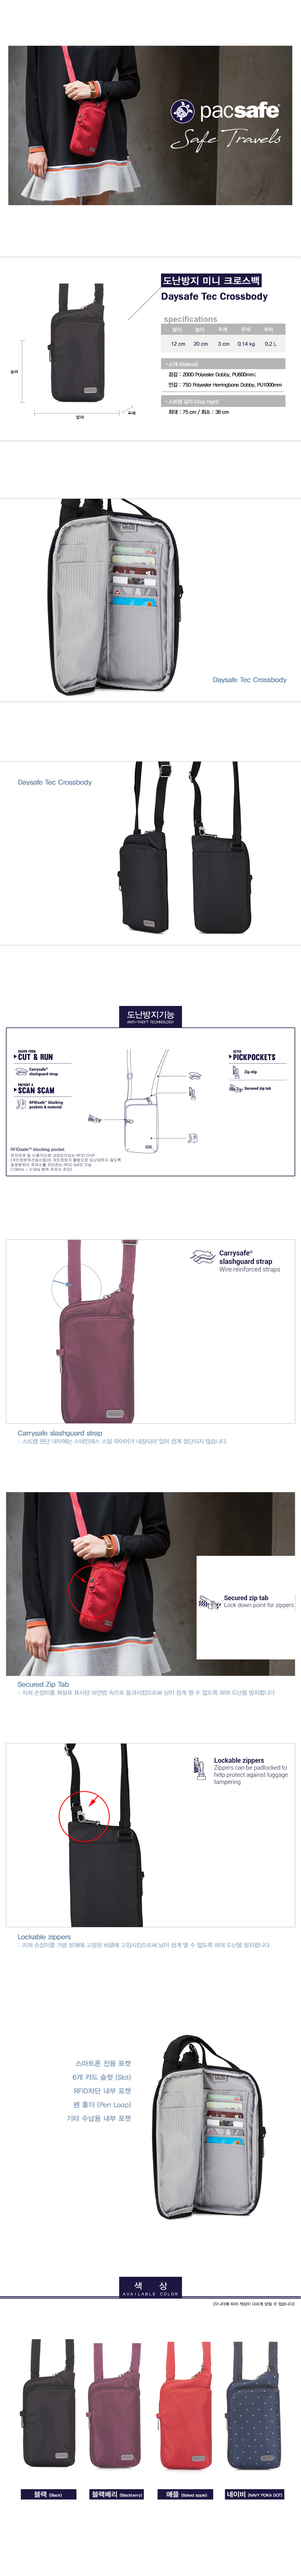 daysafe tech crossbody_1050_m.jpg